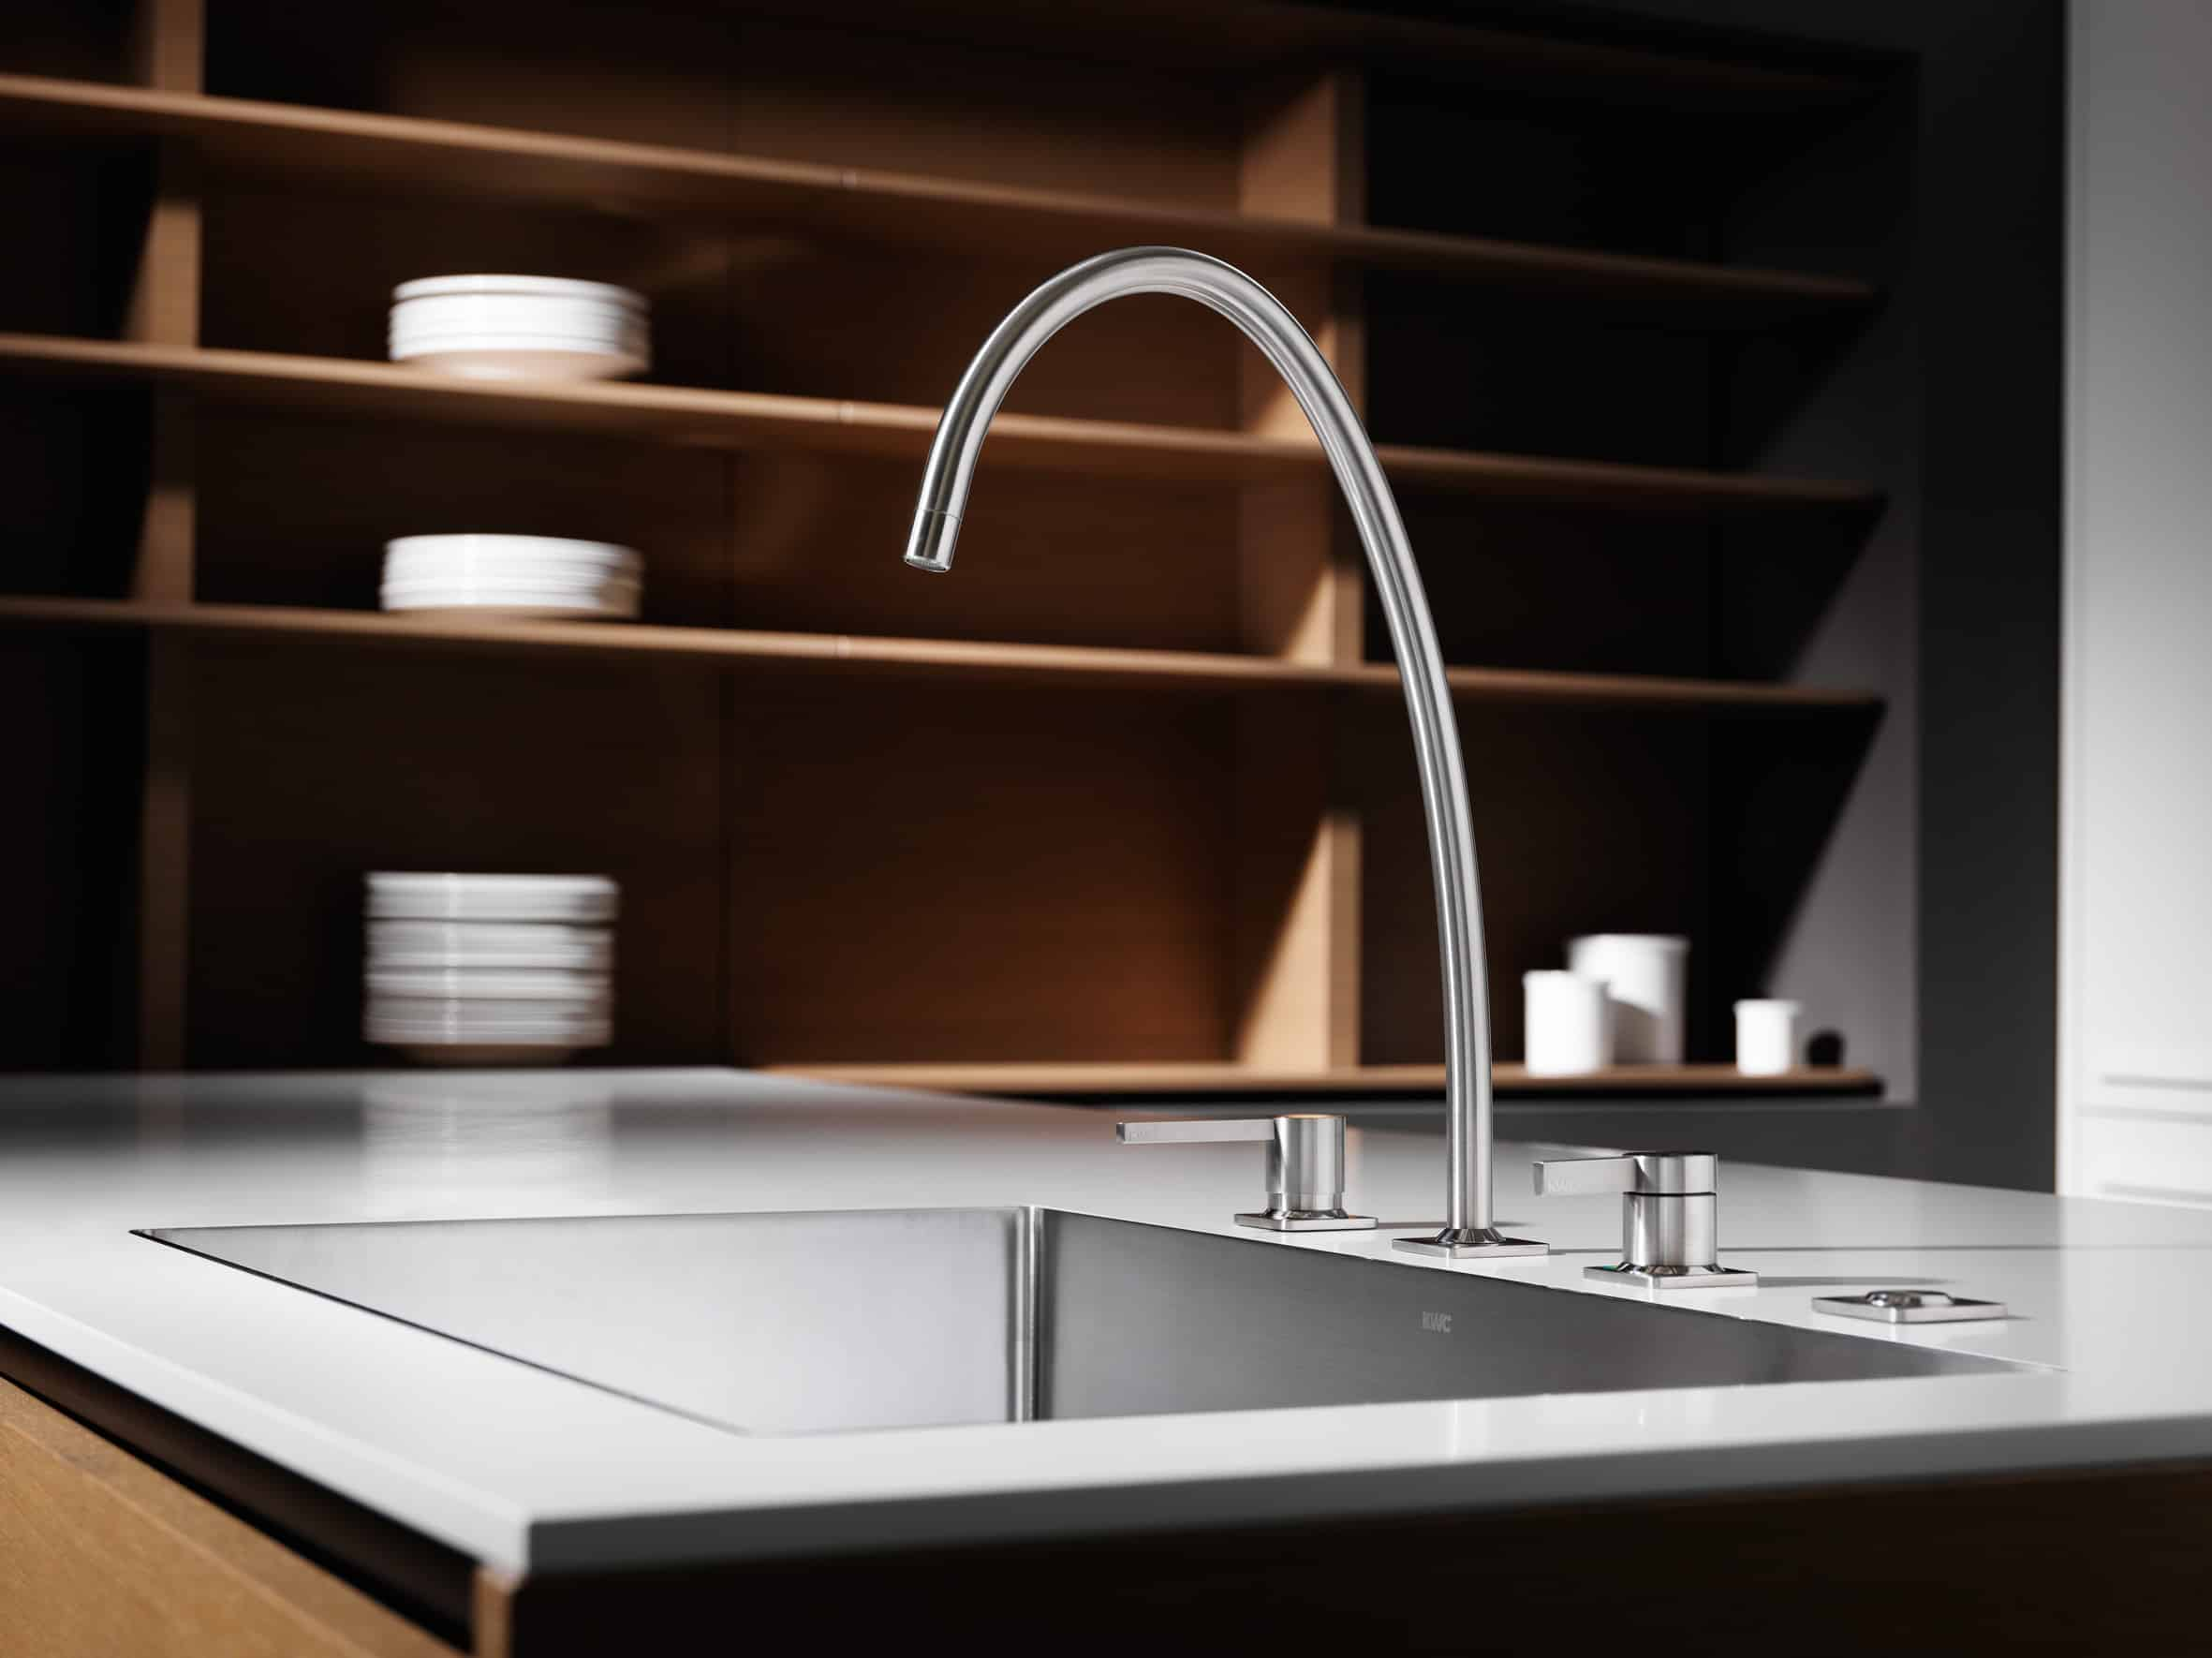 steel benelave original brushed trendy with tap wall kitchen fittings hansa double in faucet neo sink colonial price faucets ht perfect mounted